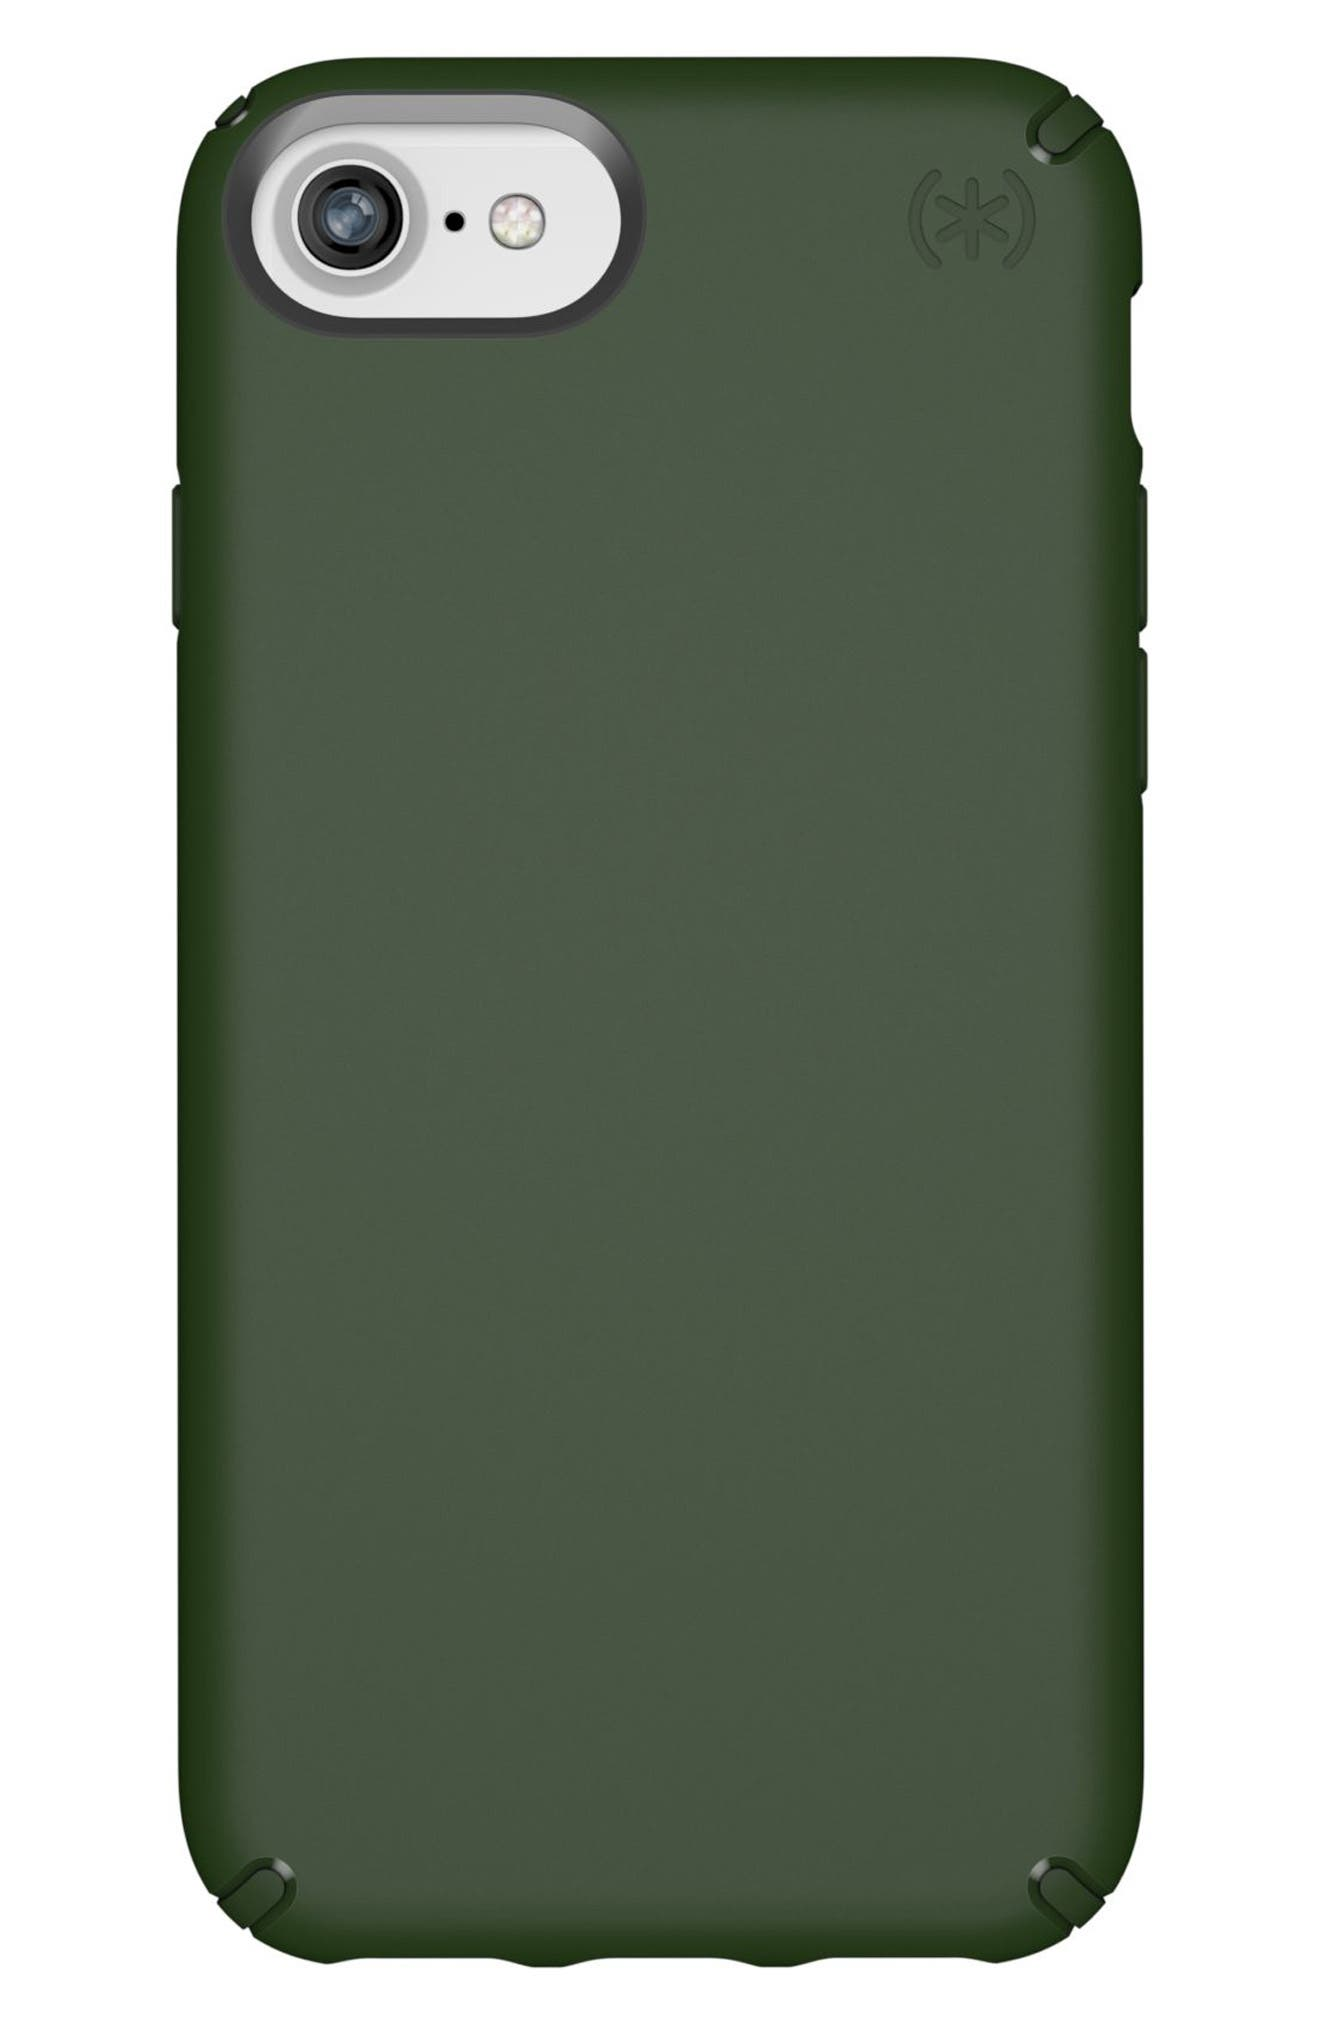 iPhone 6/6s/7/8 Case,                         Main,                         color, Dusty Green/ Dusty Green